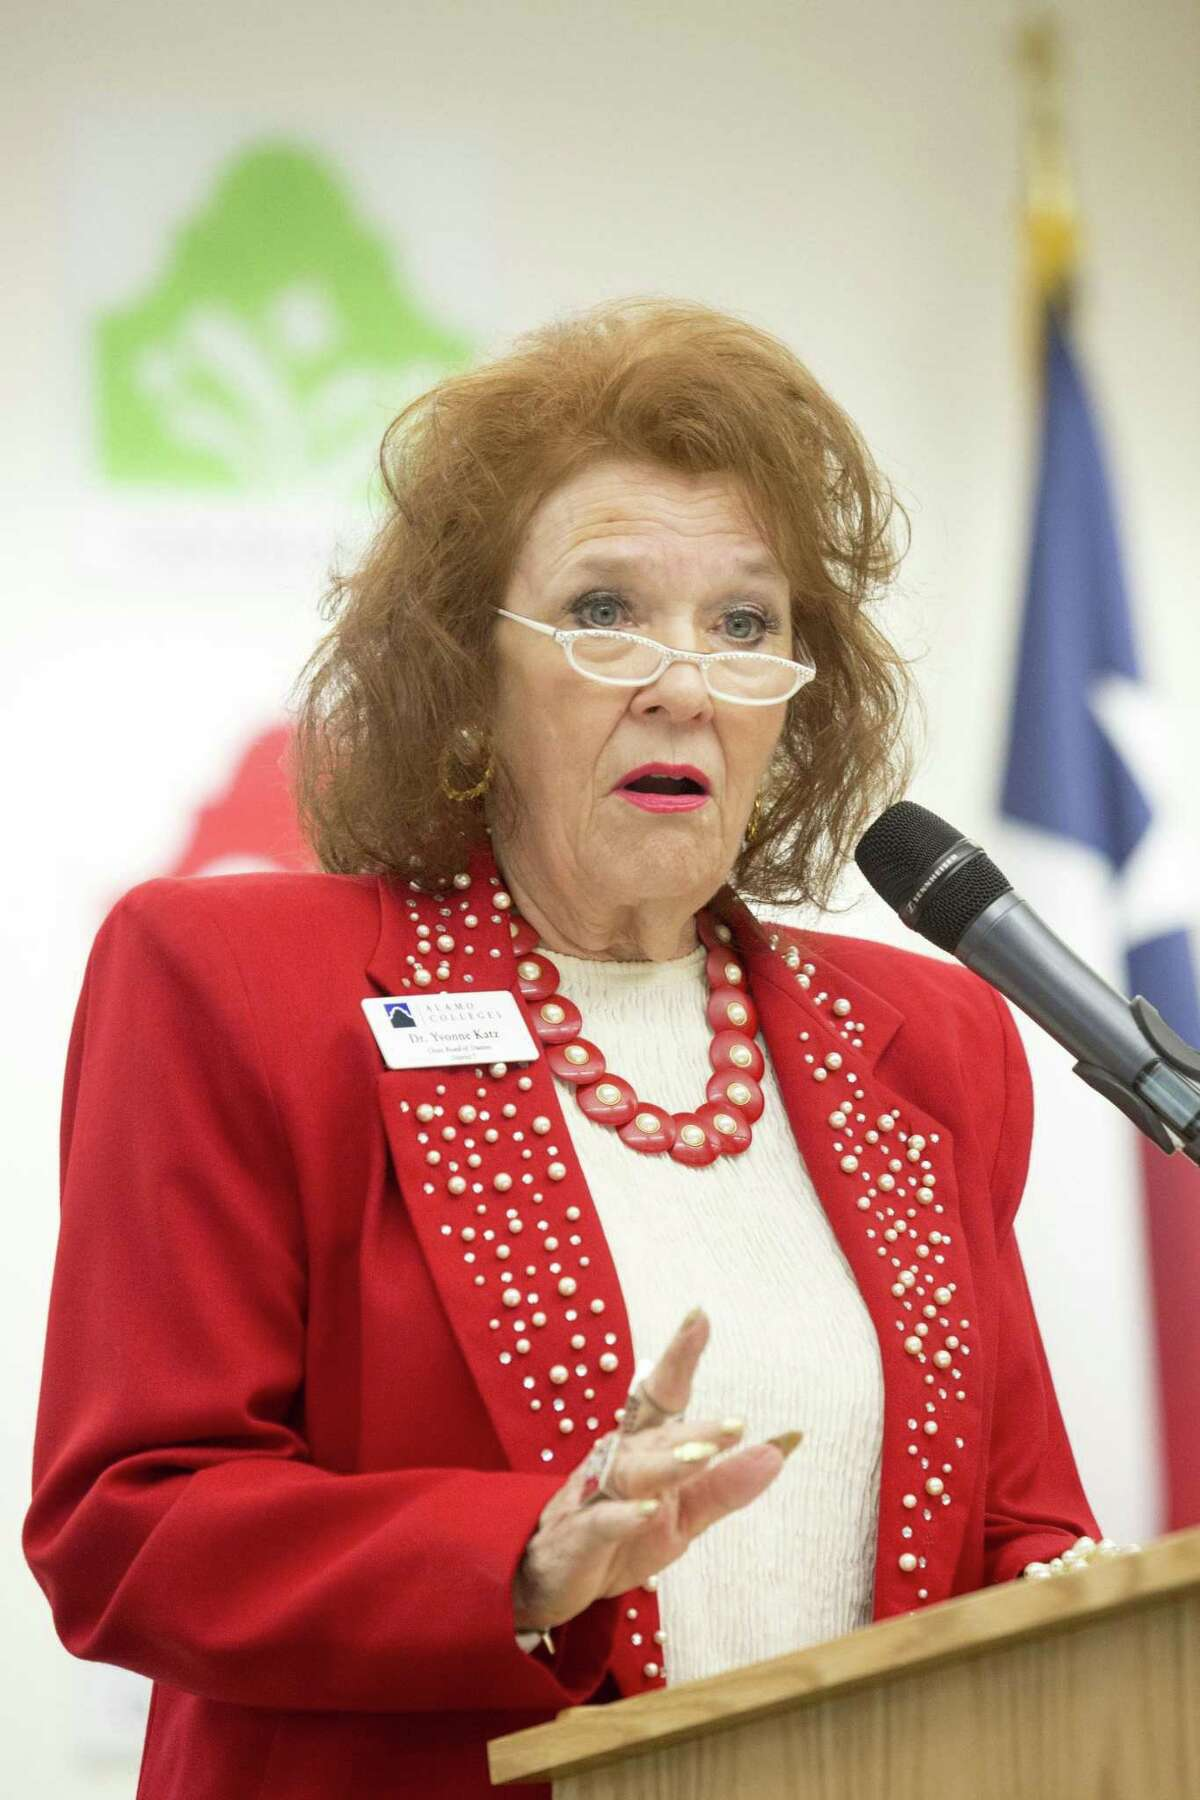 Yvonne Katz, the Alamo Colleges board chairwoman, speaks at a press conference a year ago. The board could vote on a new chancellor for the community college district as early as Thursday. Ray Whitehouse / for the San Antonio Express-News